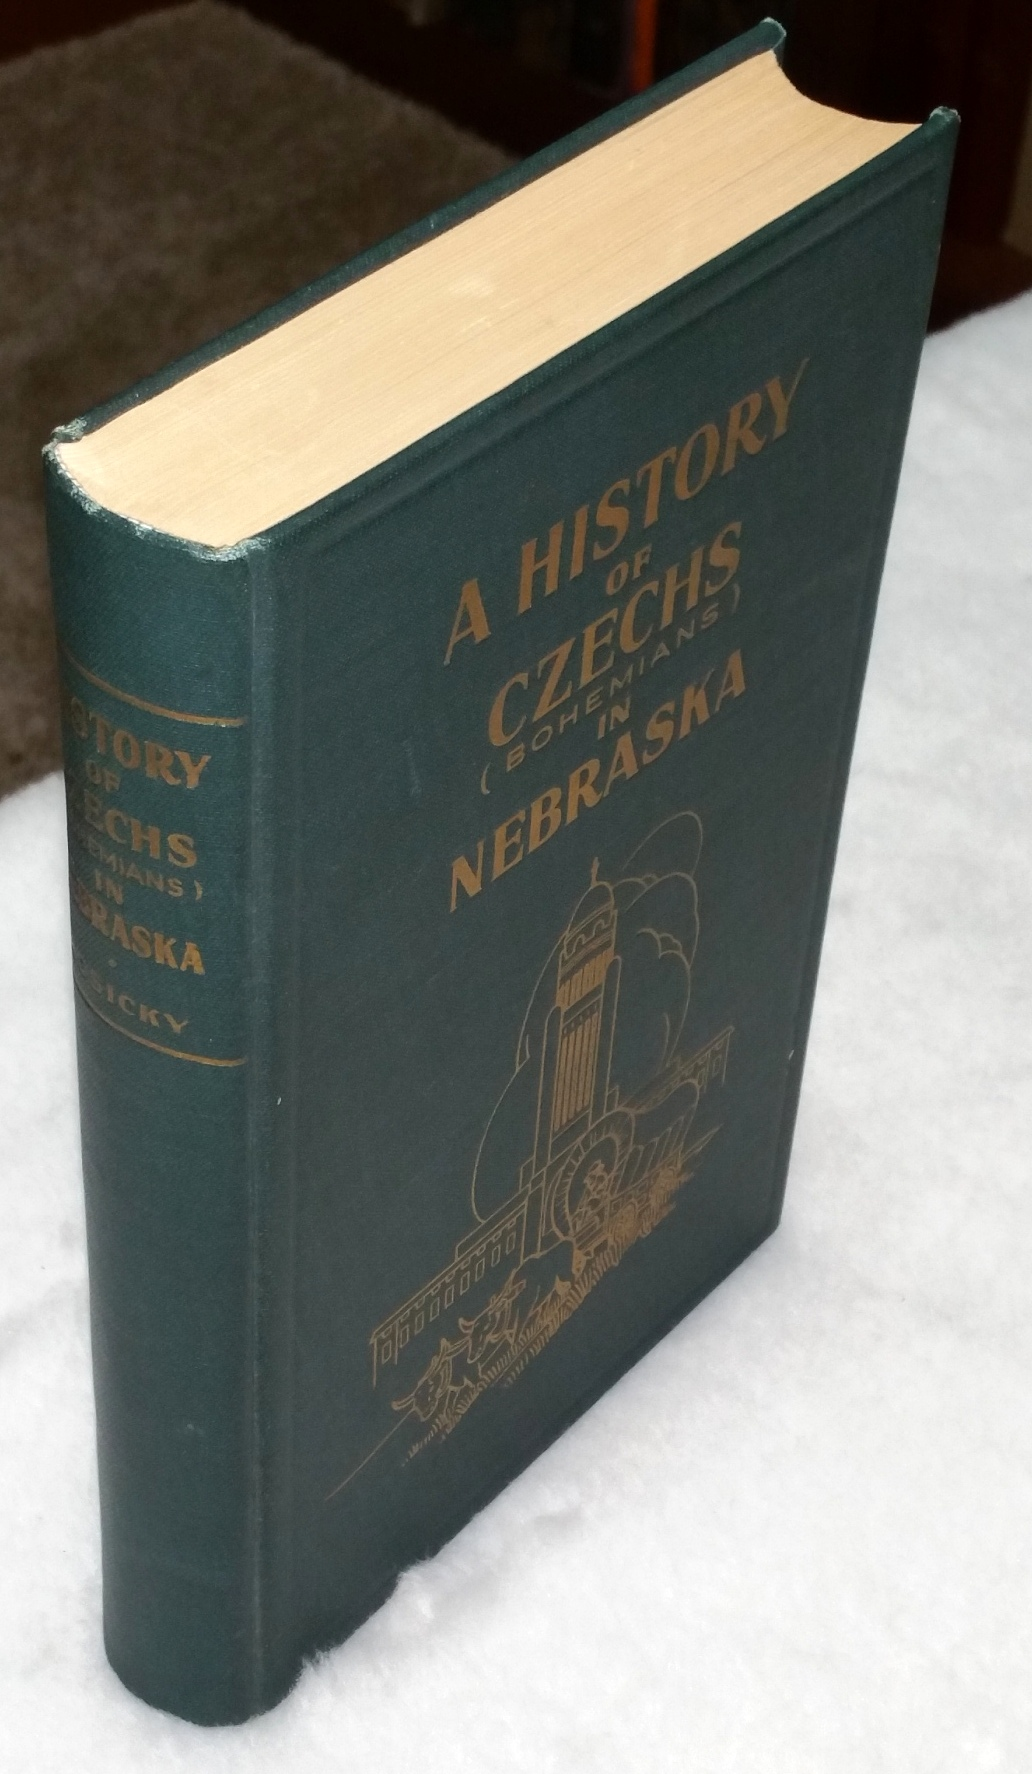 Image for A History of Czechs (Bohemians) in Nebraska